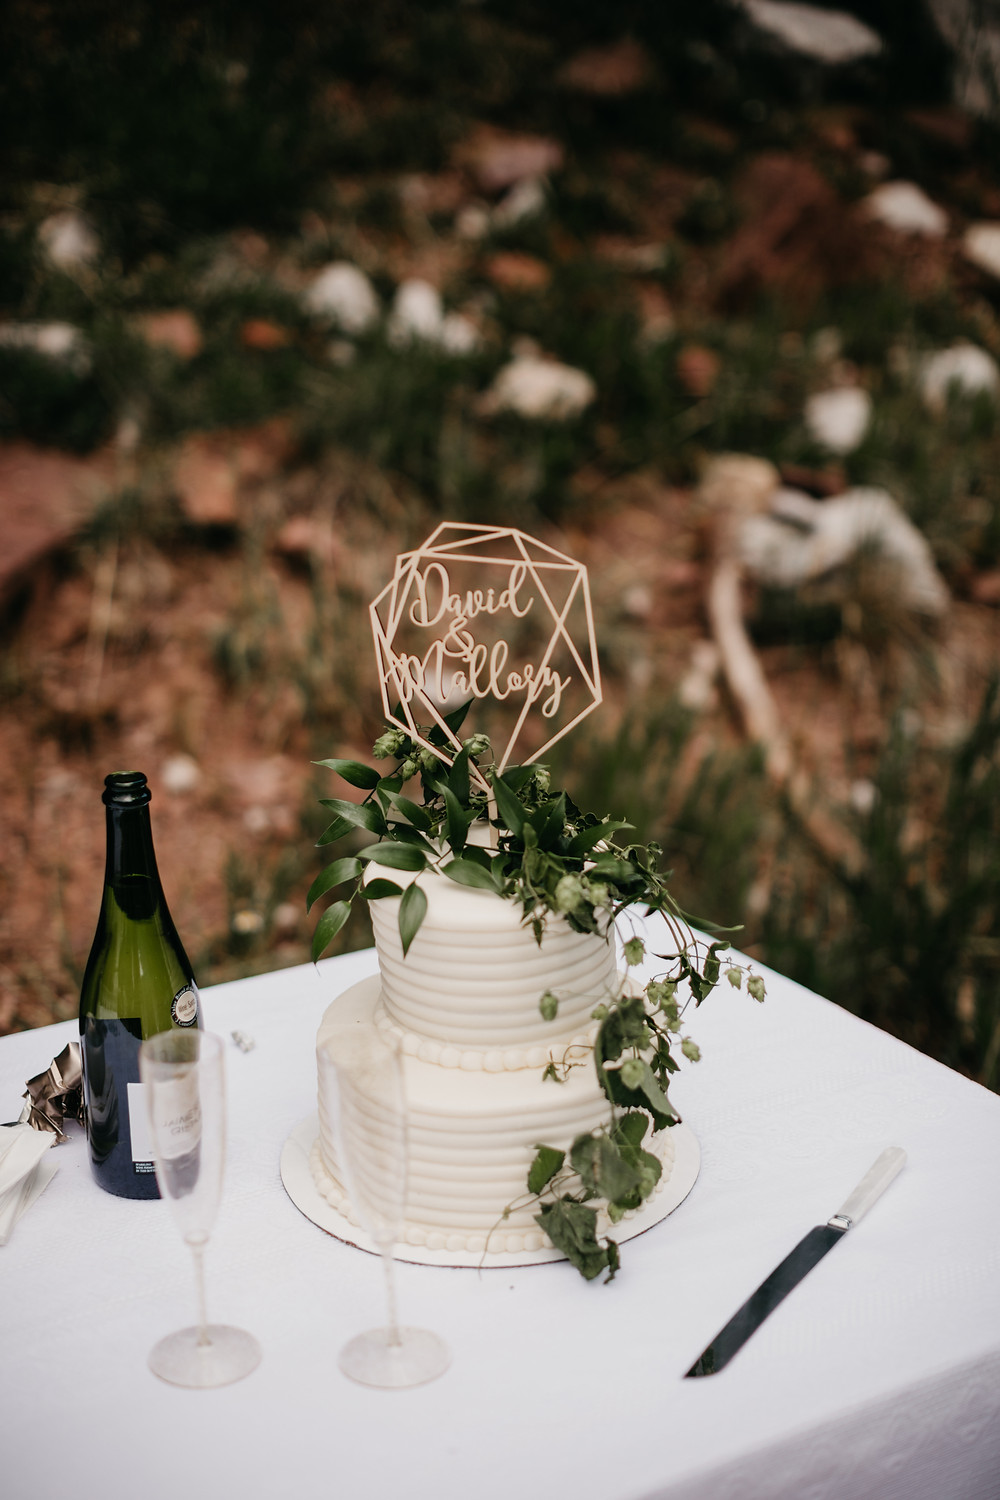 Mallory & David Aspen Elopement - Emma Lea Floral- Our Two Hearts Photography - Maroon Bells - Aspen Wedding - Denver Colorado Fine Art Floral Design - Luxury Wedding and Event Florist - Anemone | Rose  | Astrantia | Hops | Jasmine | White, Ivory, Navy | Mountain Wedding | Organic | Cake |